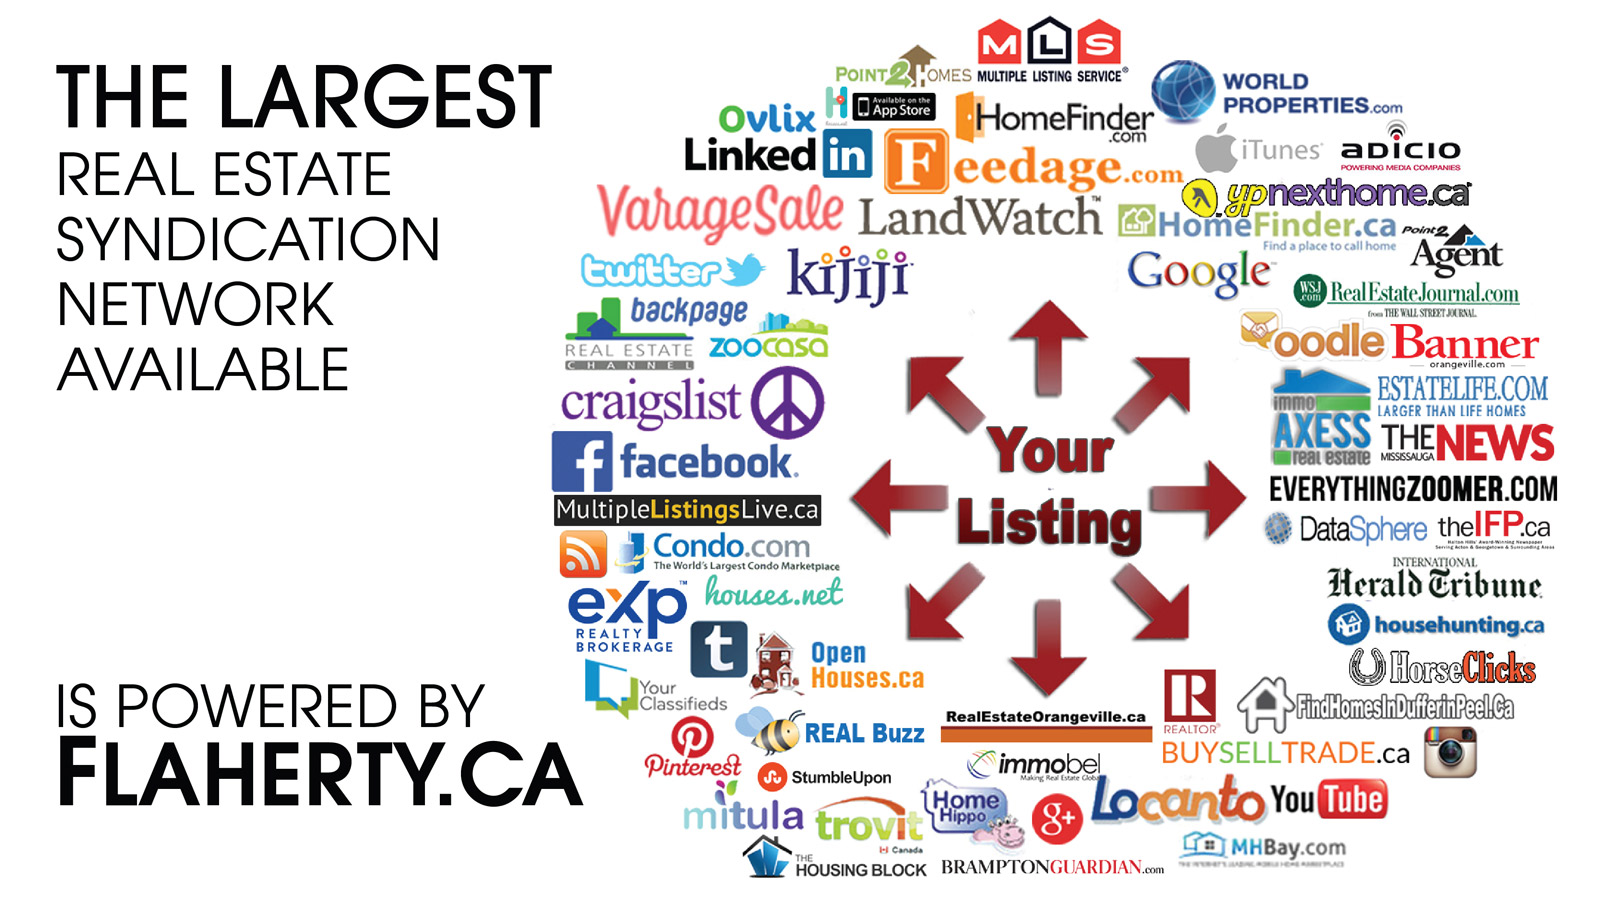 The largest Syndication Network Available